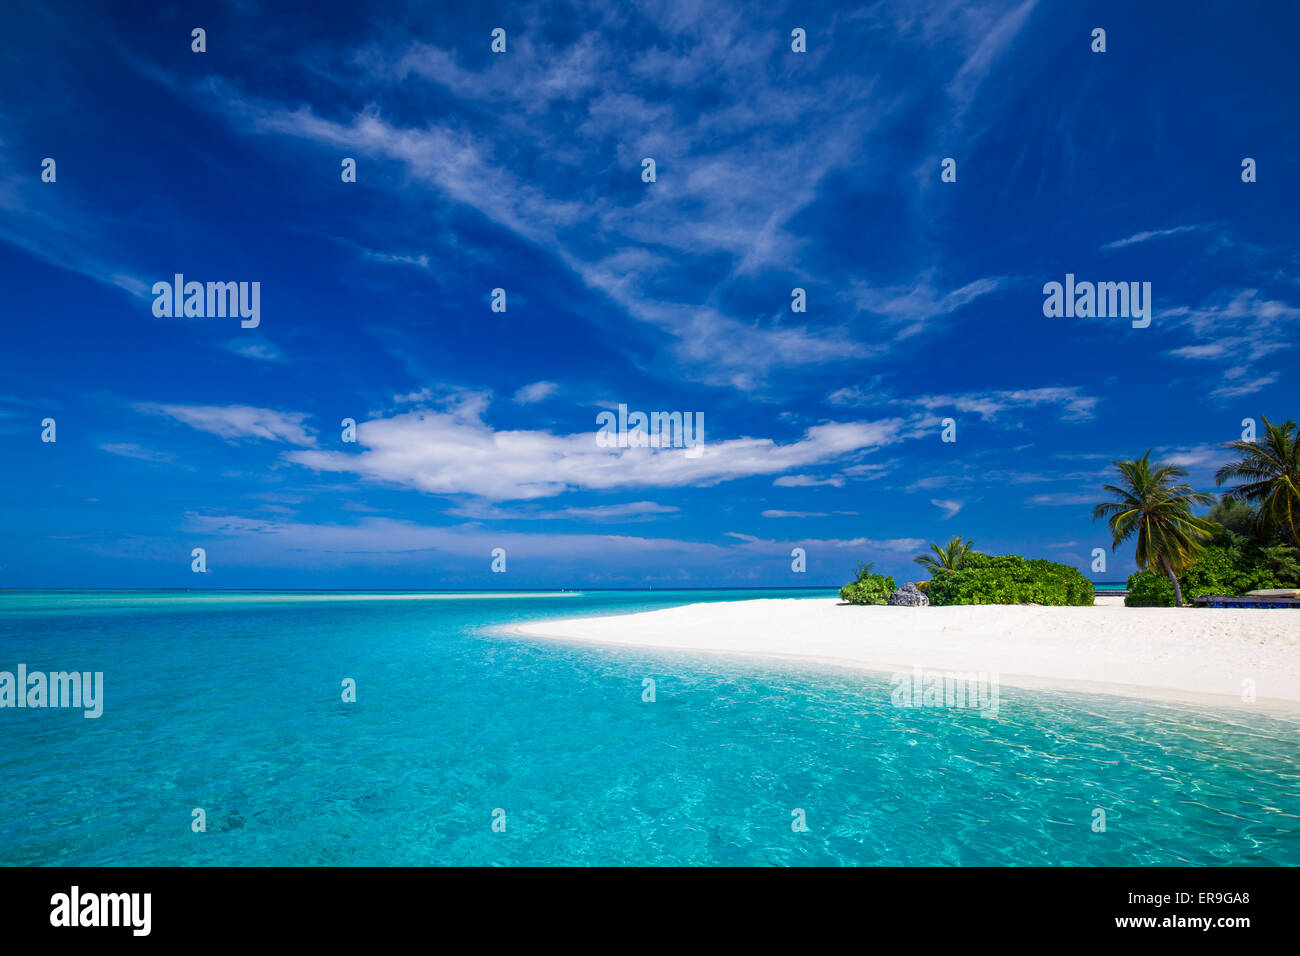 White tropical beach in Maldives with few palm trees and blue lagoon - Stock Image